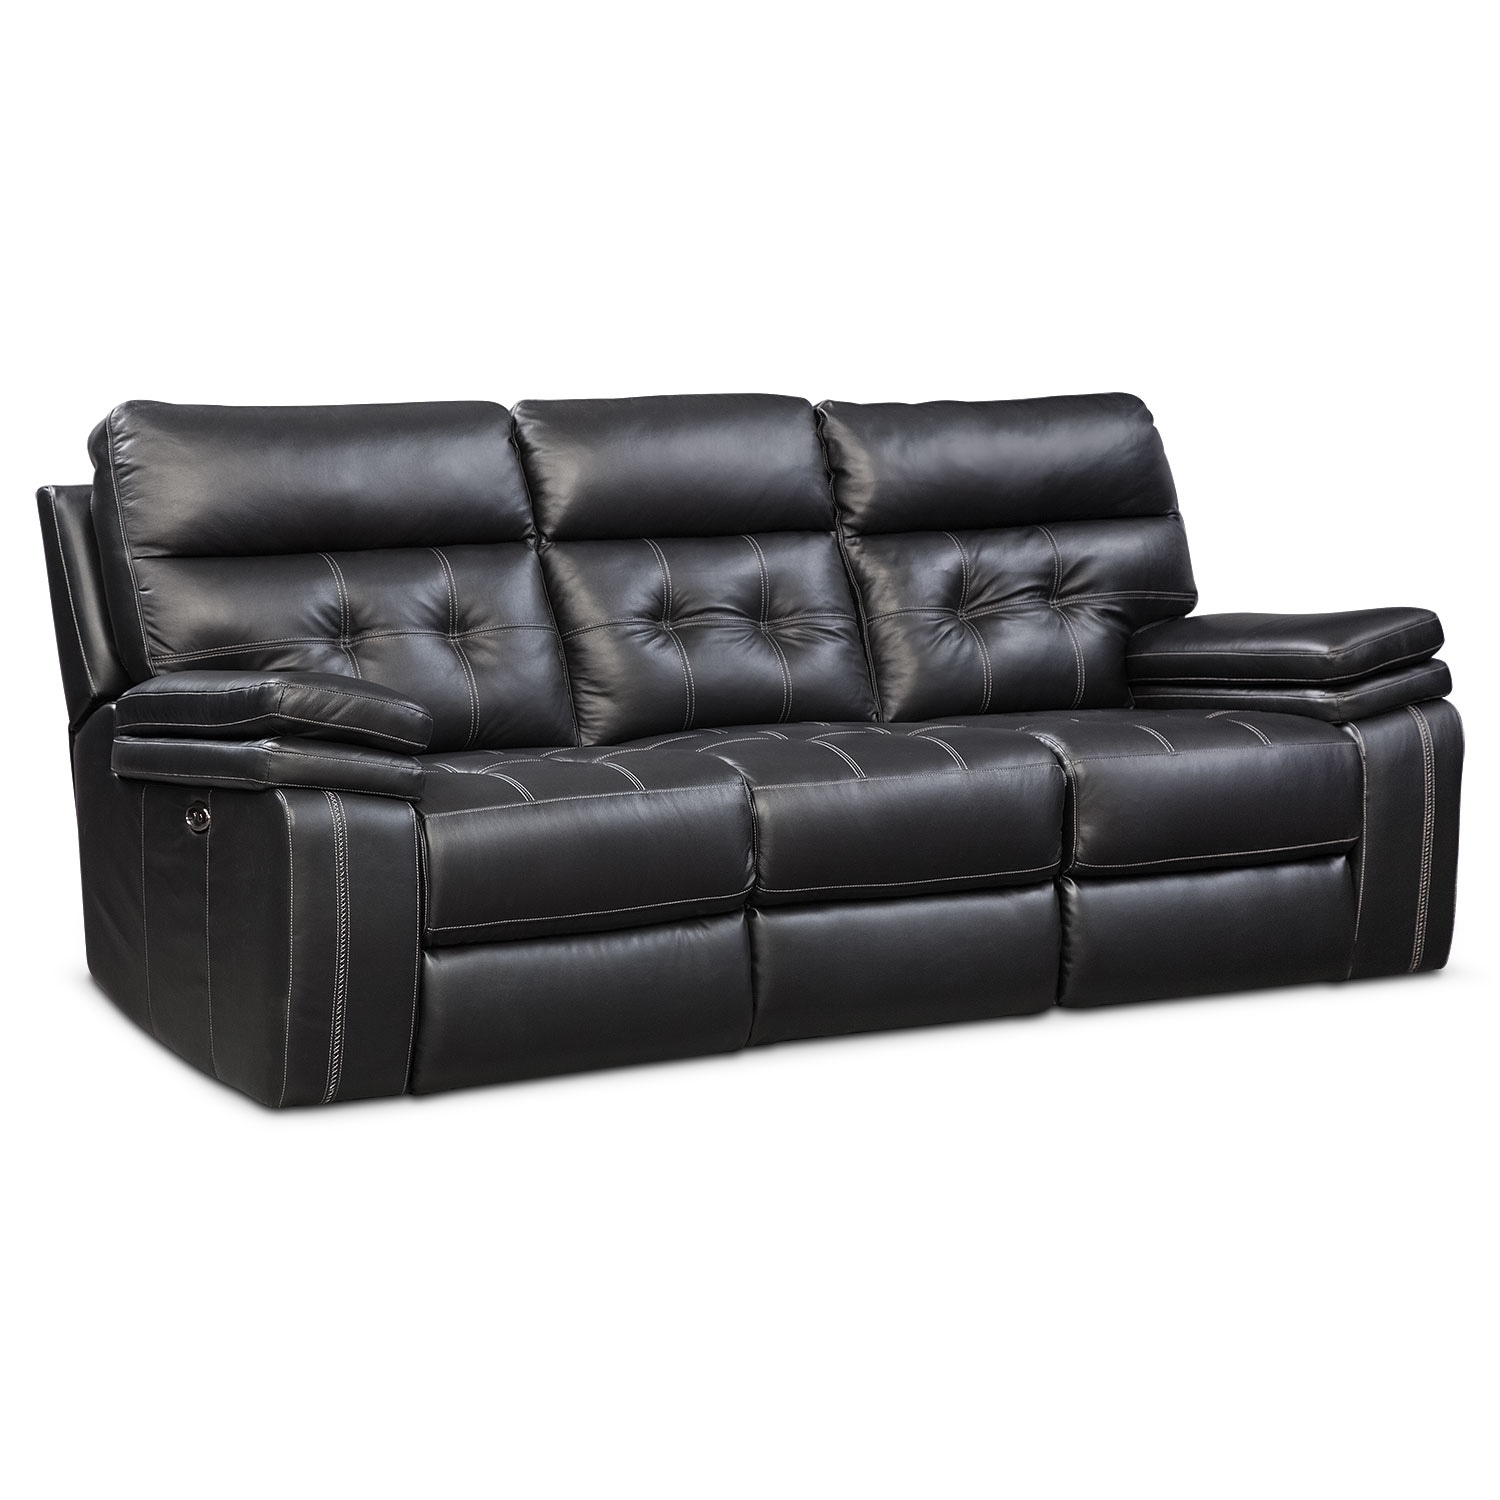 Sofas And Couches | Living Room Seating | Value City Furniture And For Marcus Chocolate 6 Piece Sectionals With Power Headrest And Usb (Image 24 of 25)